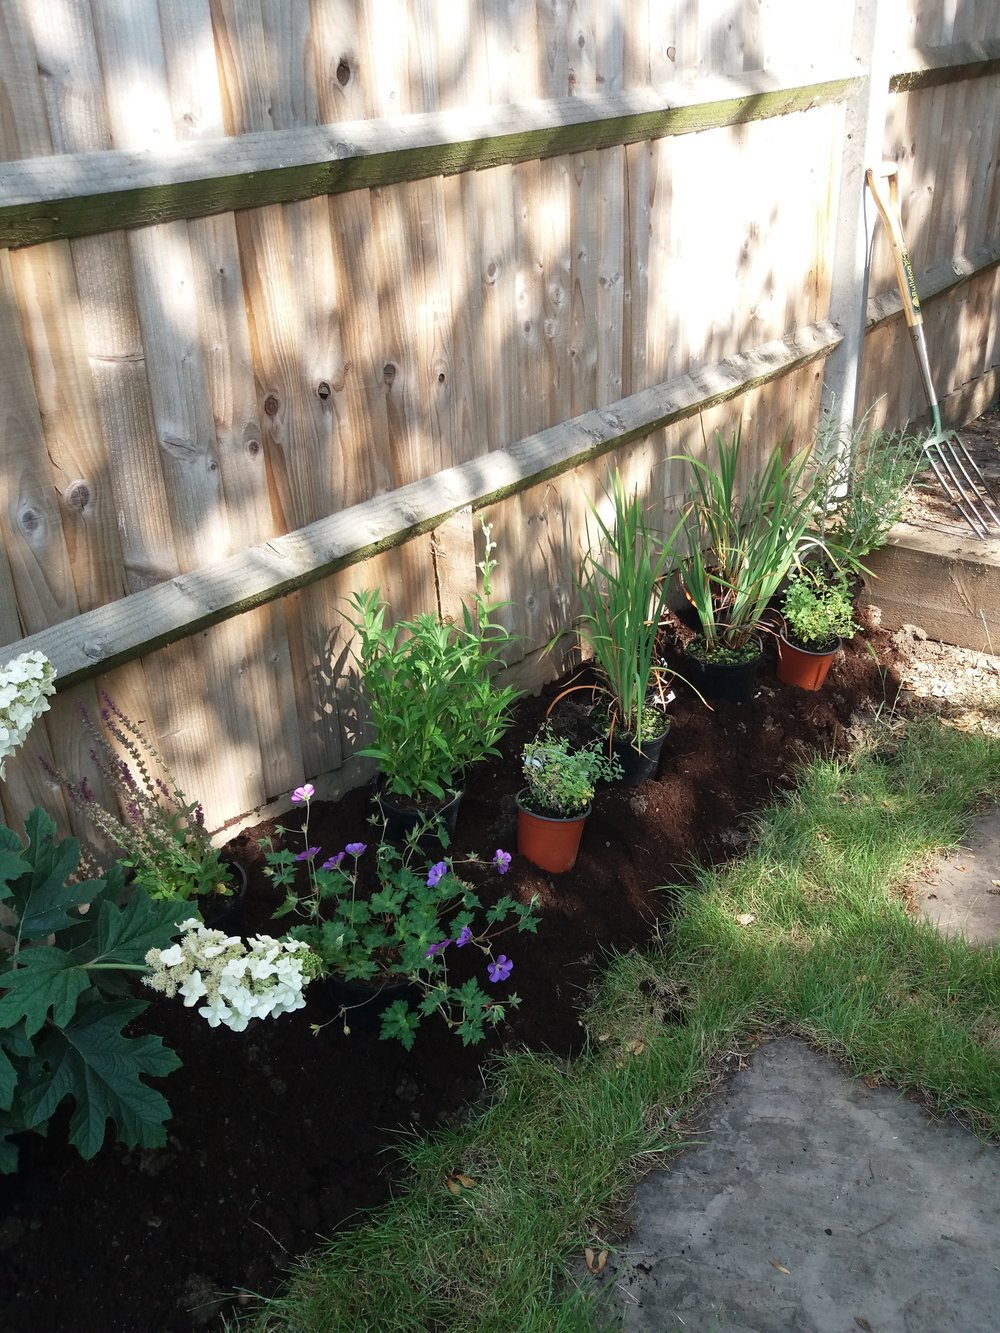 Planting up a garden for more summer colour, June 2018